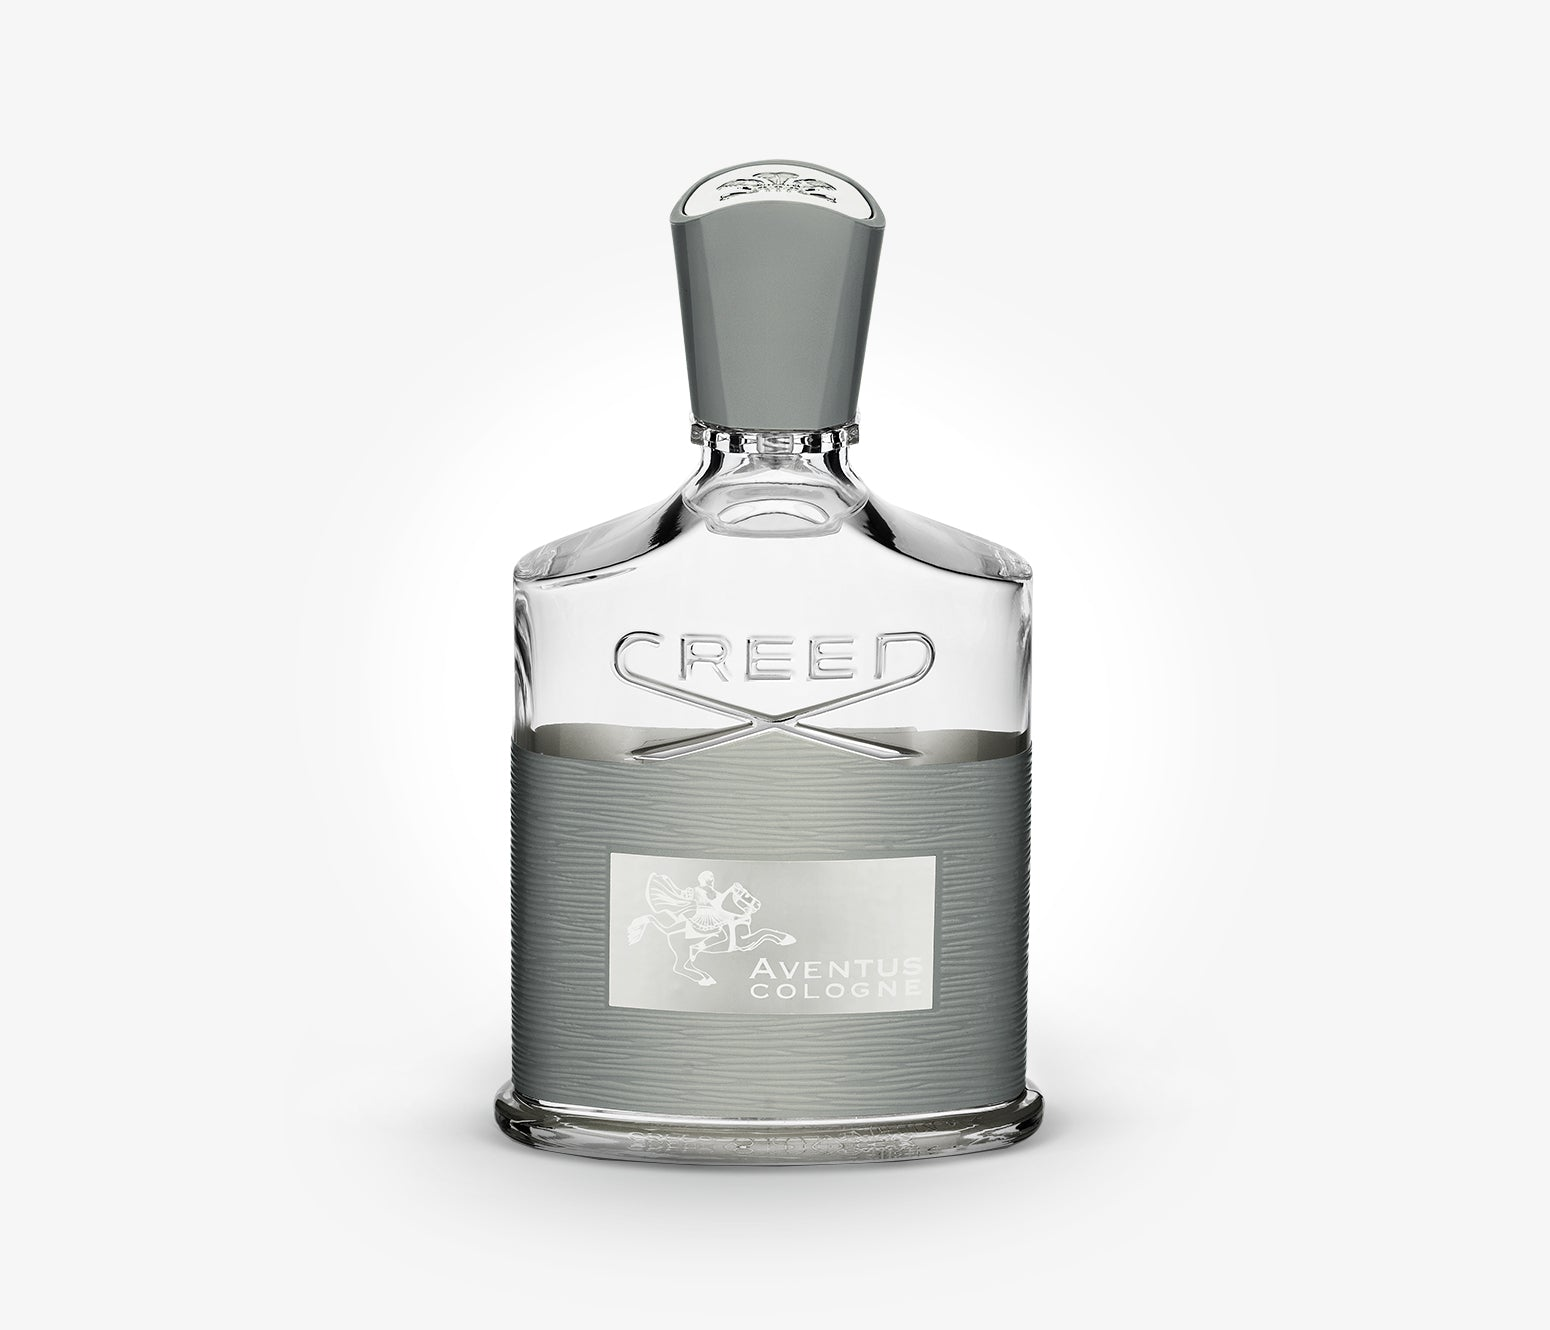 Creed  - Aventus Cologne - 100ml - GOO001 - Product Image - Fragrance - Les Senteurs